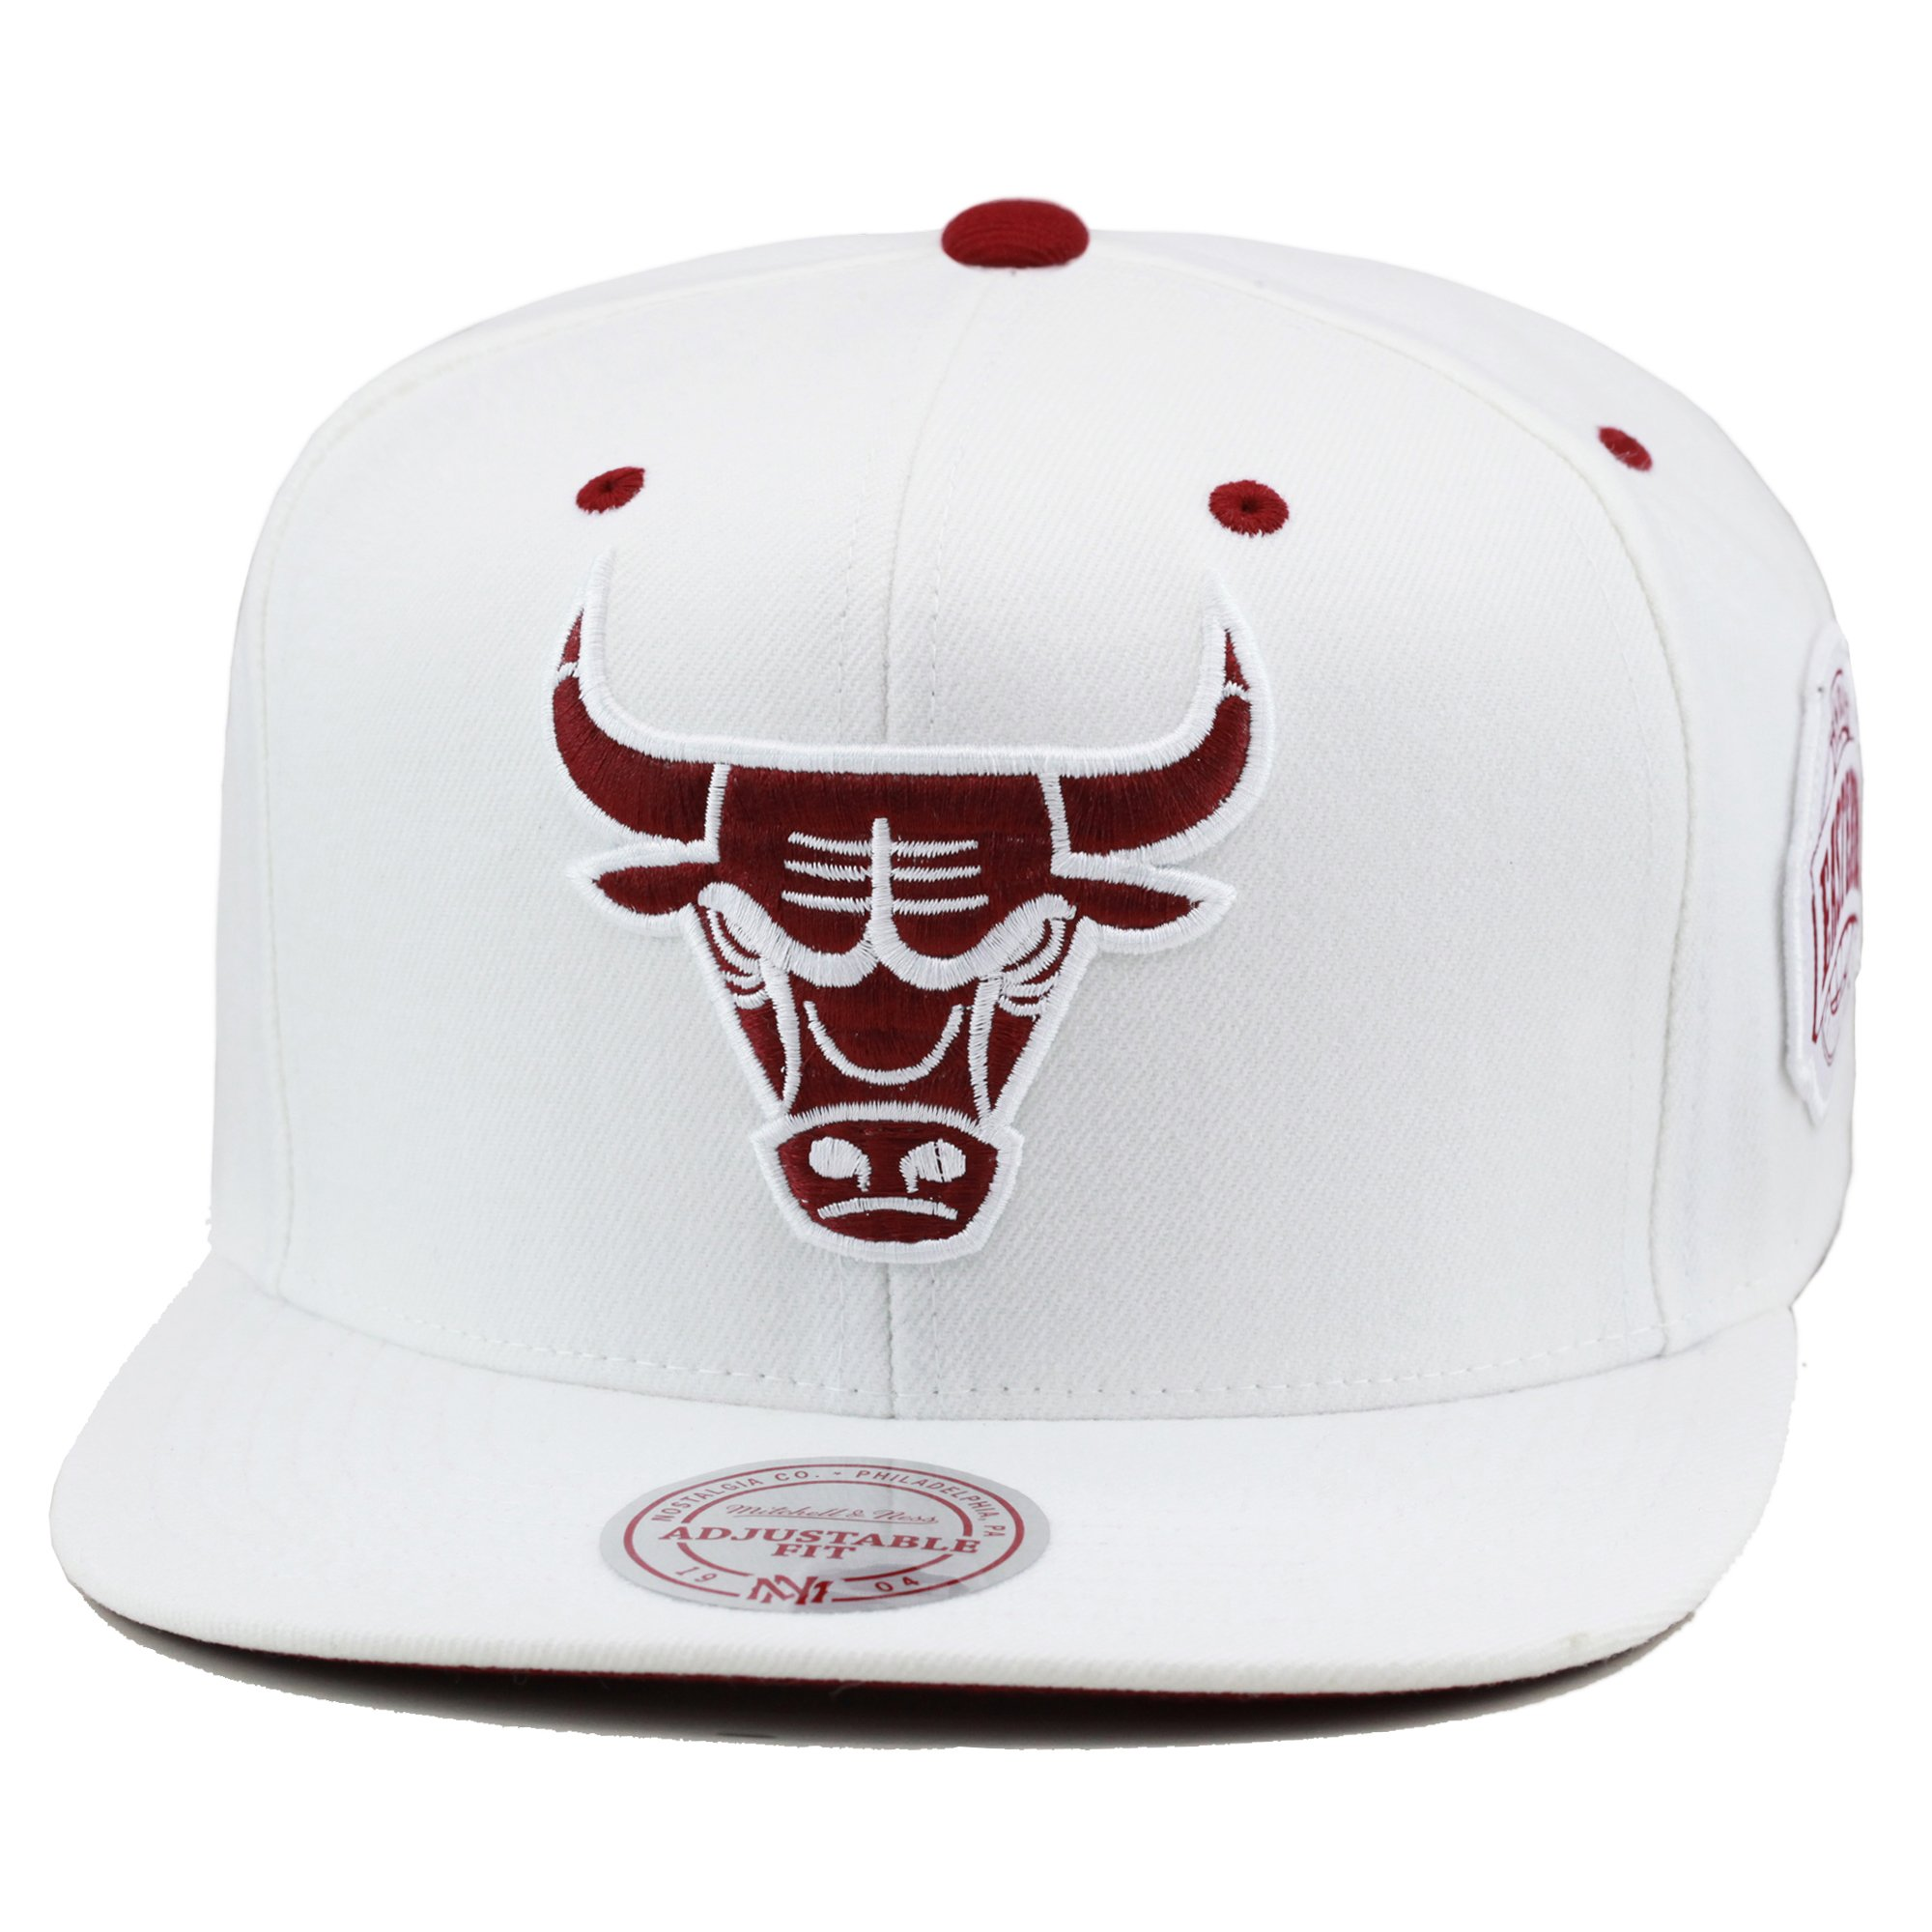 factory authentic ecef1 26393 ... cheap mitchell ness chicago bulls snapback hat cap white maroon c21ef  7db74